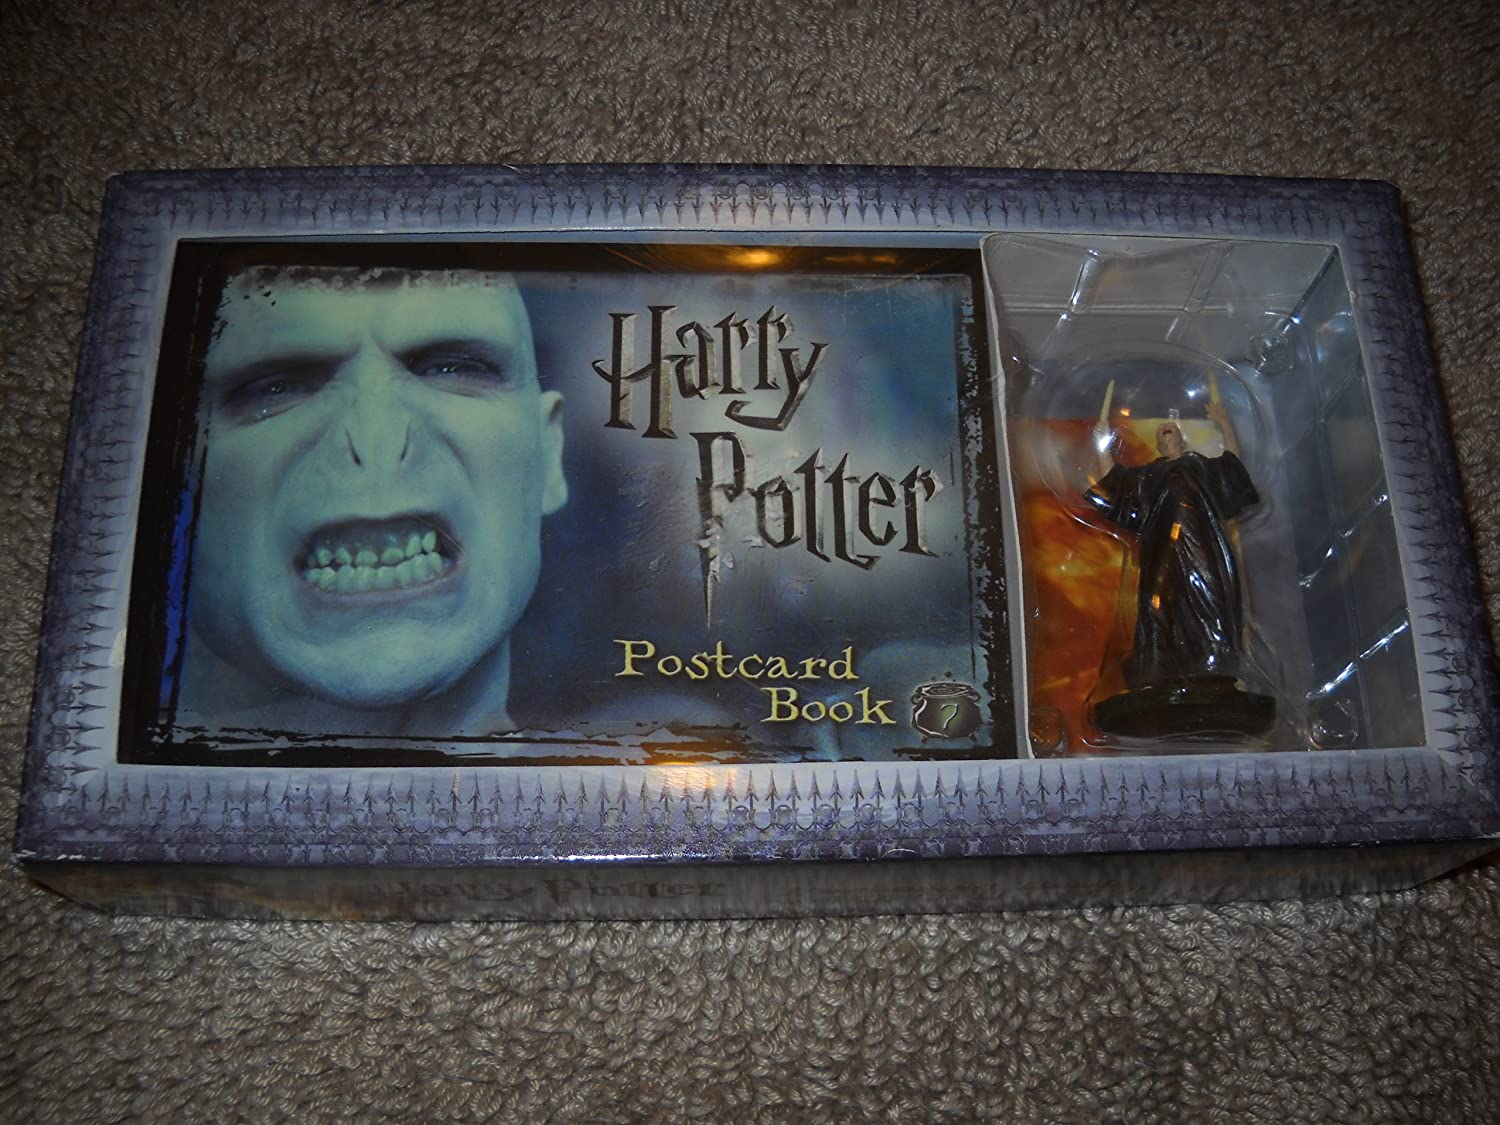 Harry Potter Postcard Book with Limited Edition Voldemort Figure